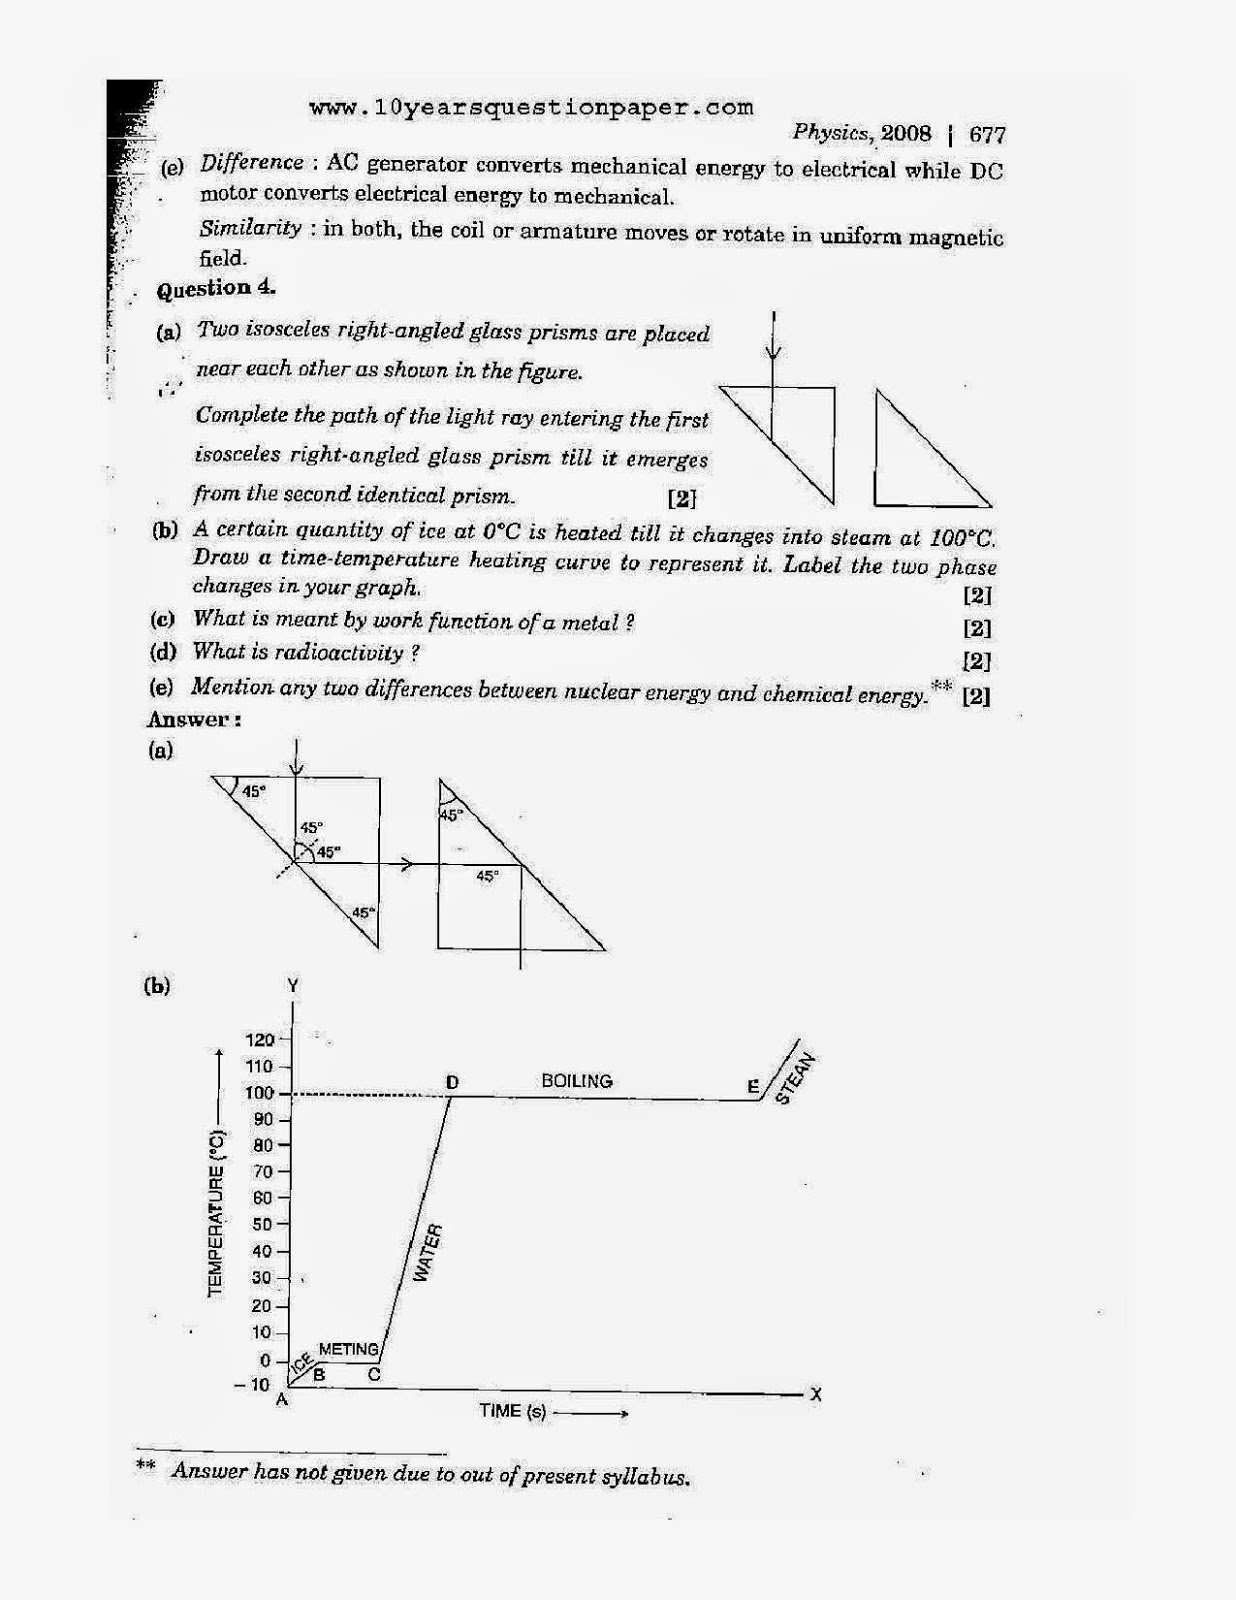 icse 2008 class 10th science physics paper 1 question paper